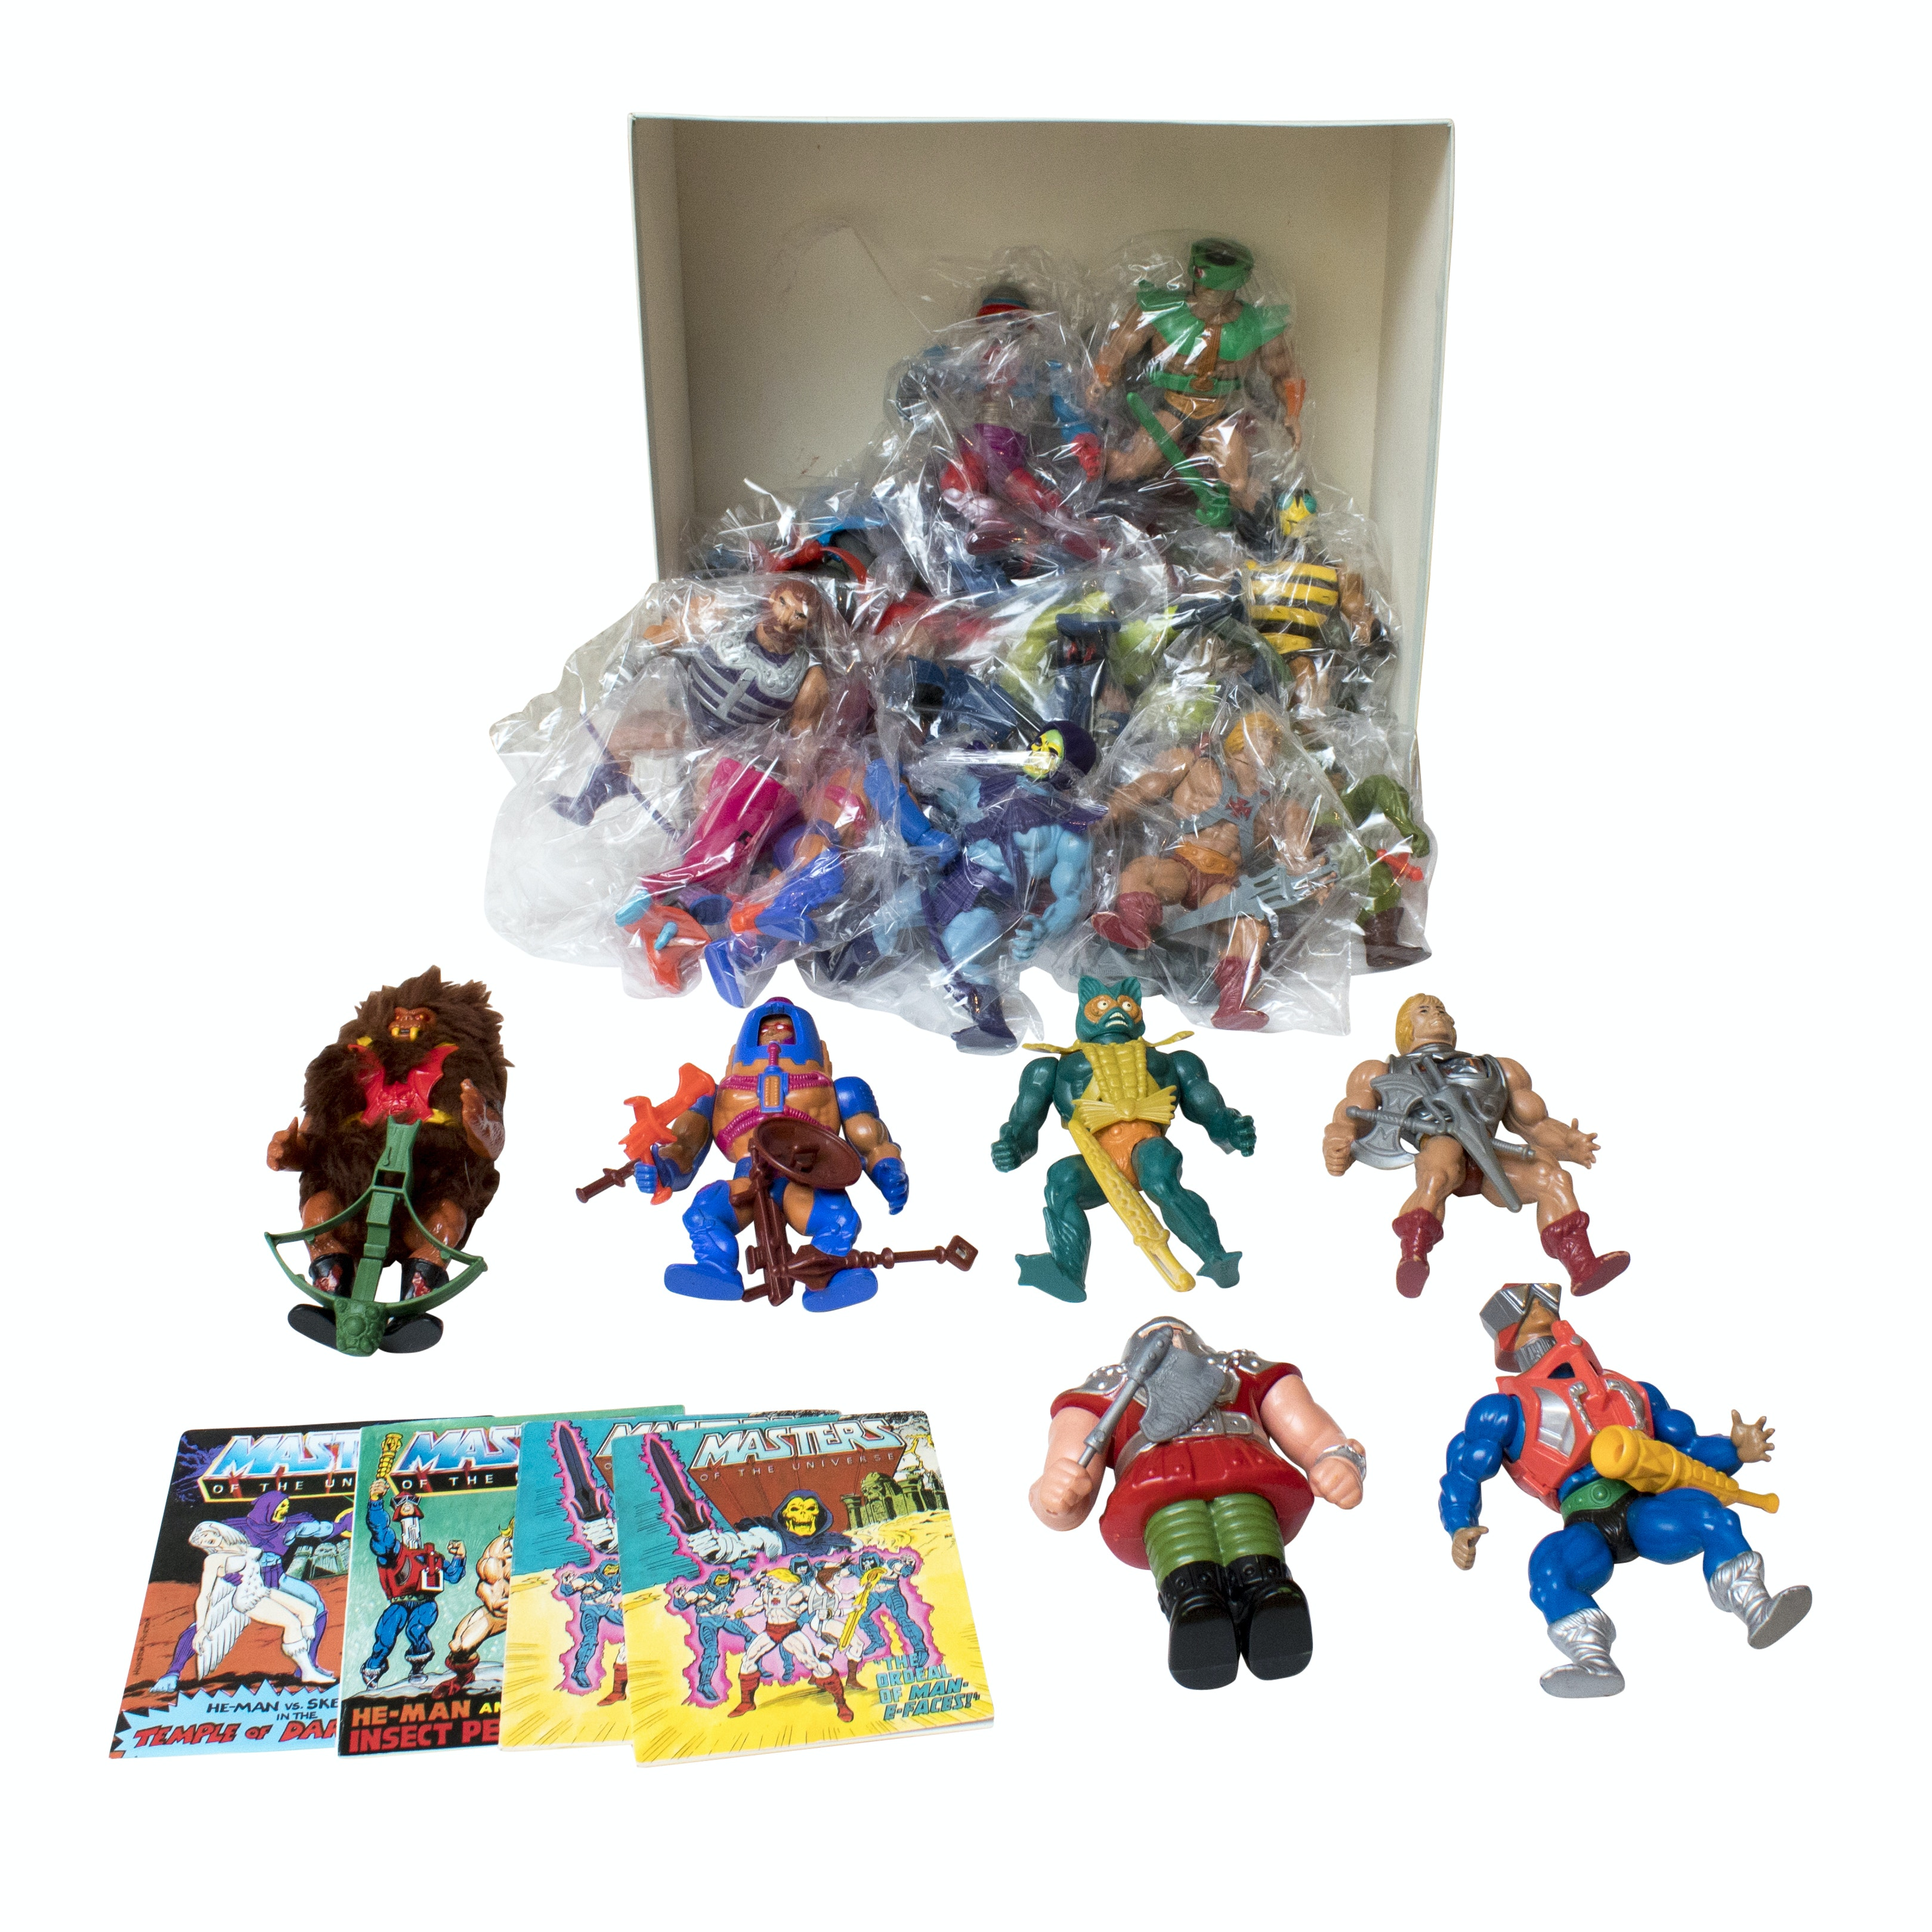 Vintage 1980s Masters of the Universe He-Man Figures and Toys